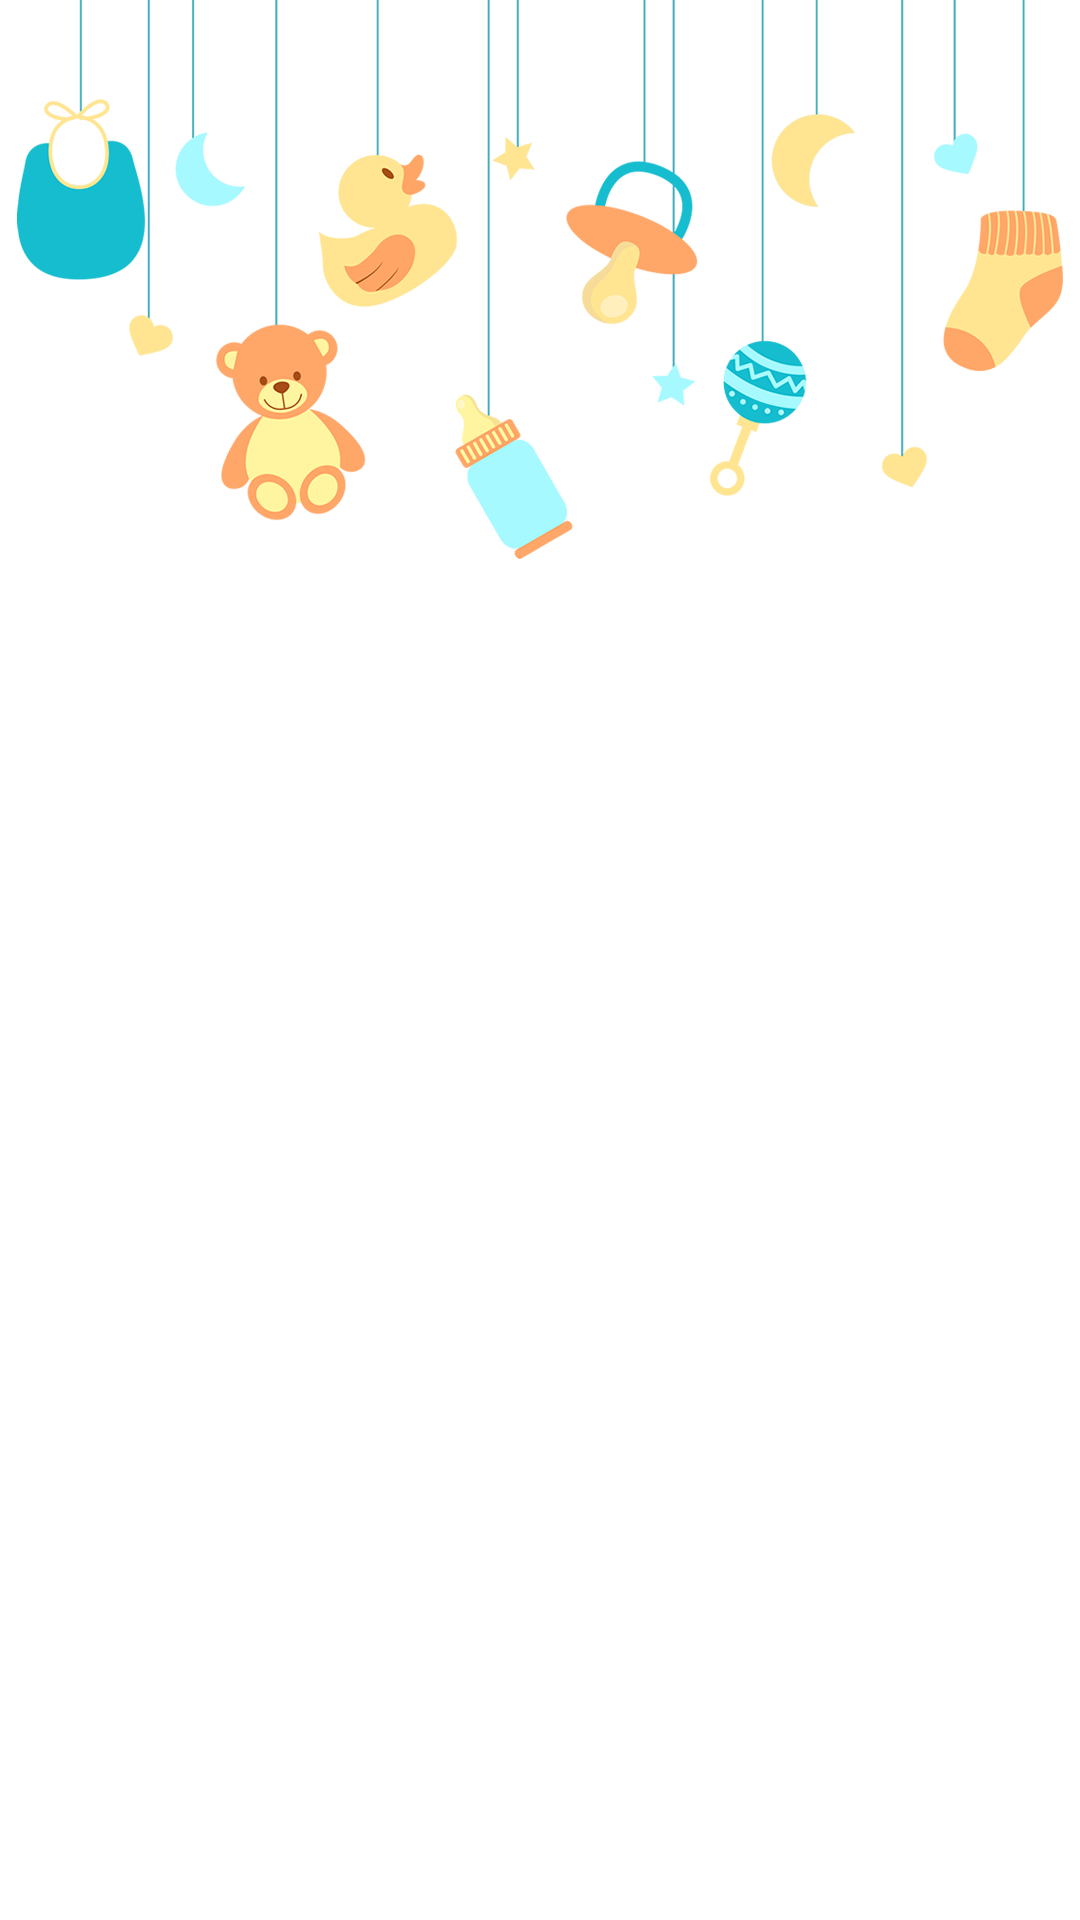 Baby shower text png. Toys snapchat filter geofilter